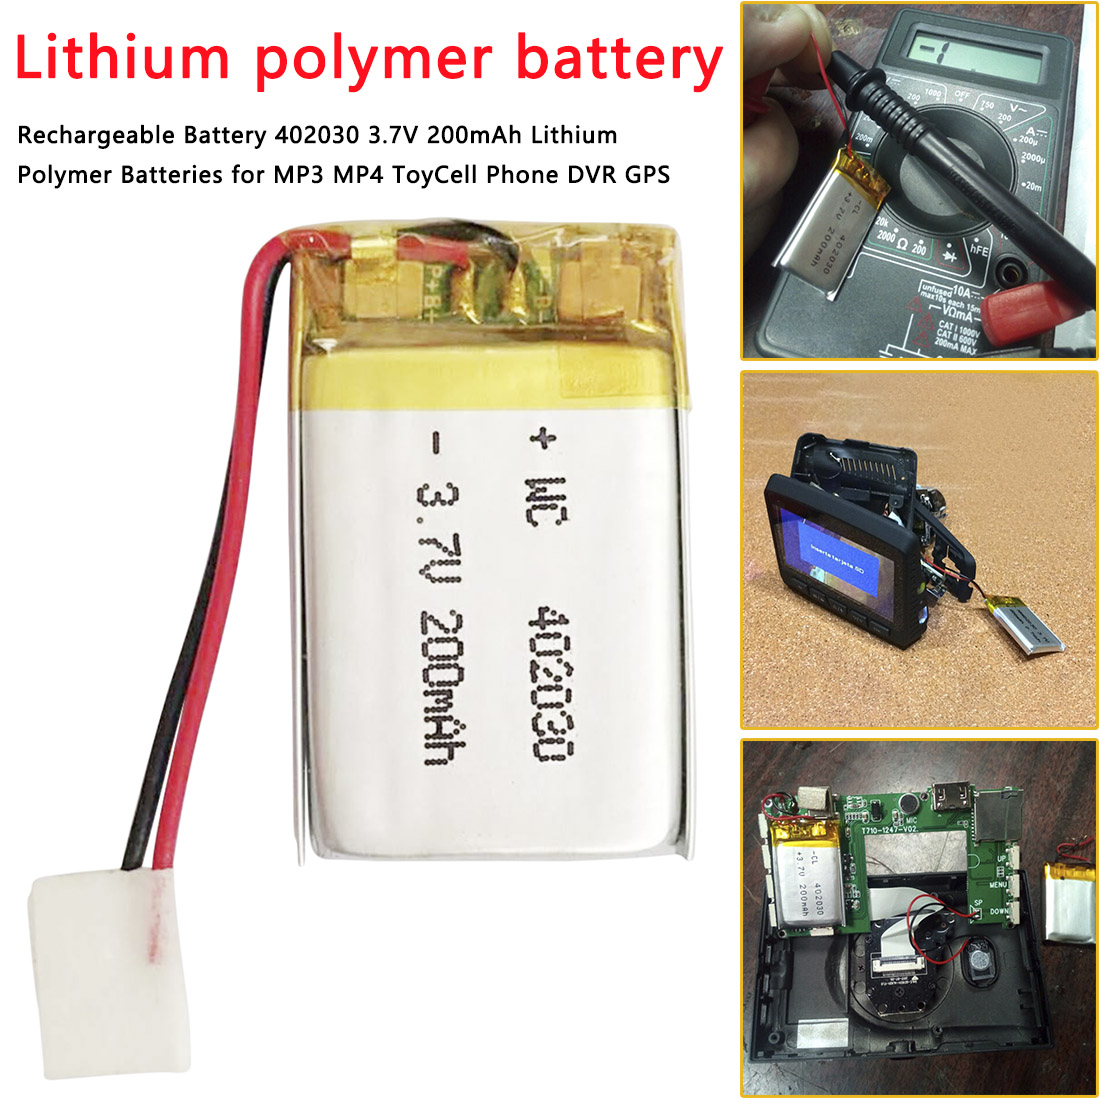 Rechargeable Battery 402030 3.7V 200mAh Lithium Polymer Batteries For MP3 MP4 Toy Cell Phone DVR GPS Li-Po Battery